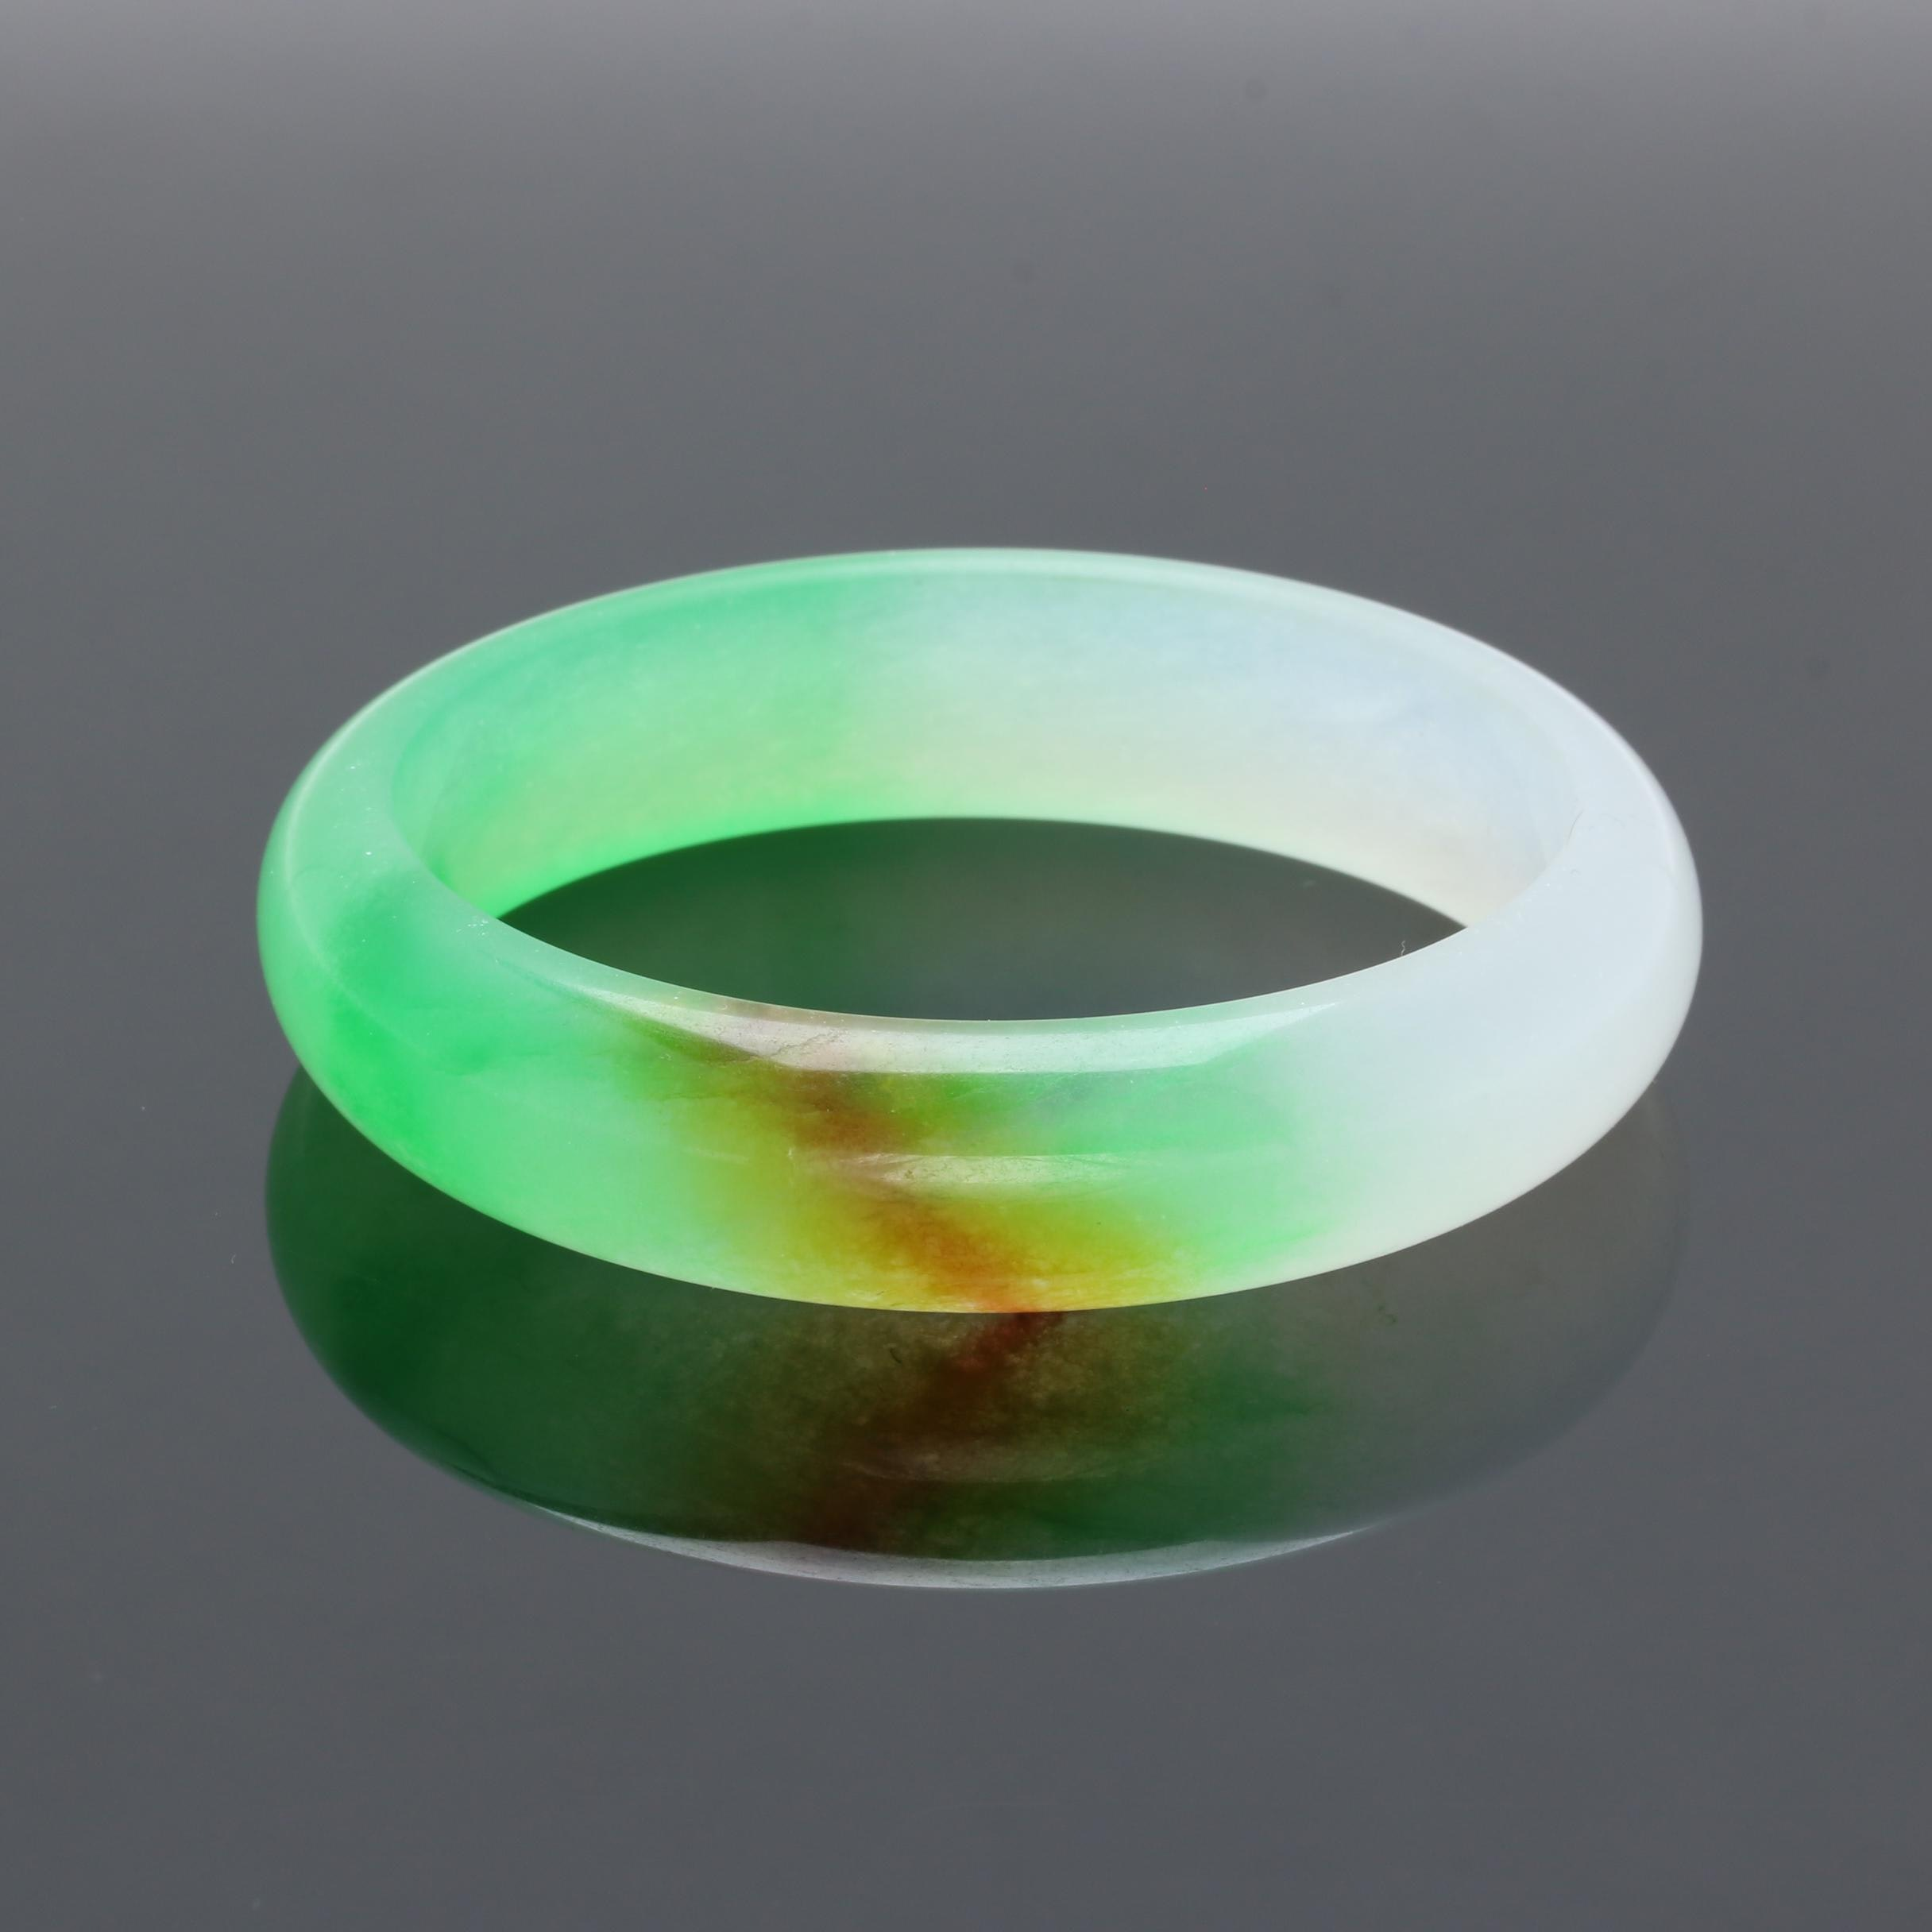 Dyed Jadeite Bangle Bracelet